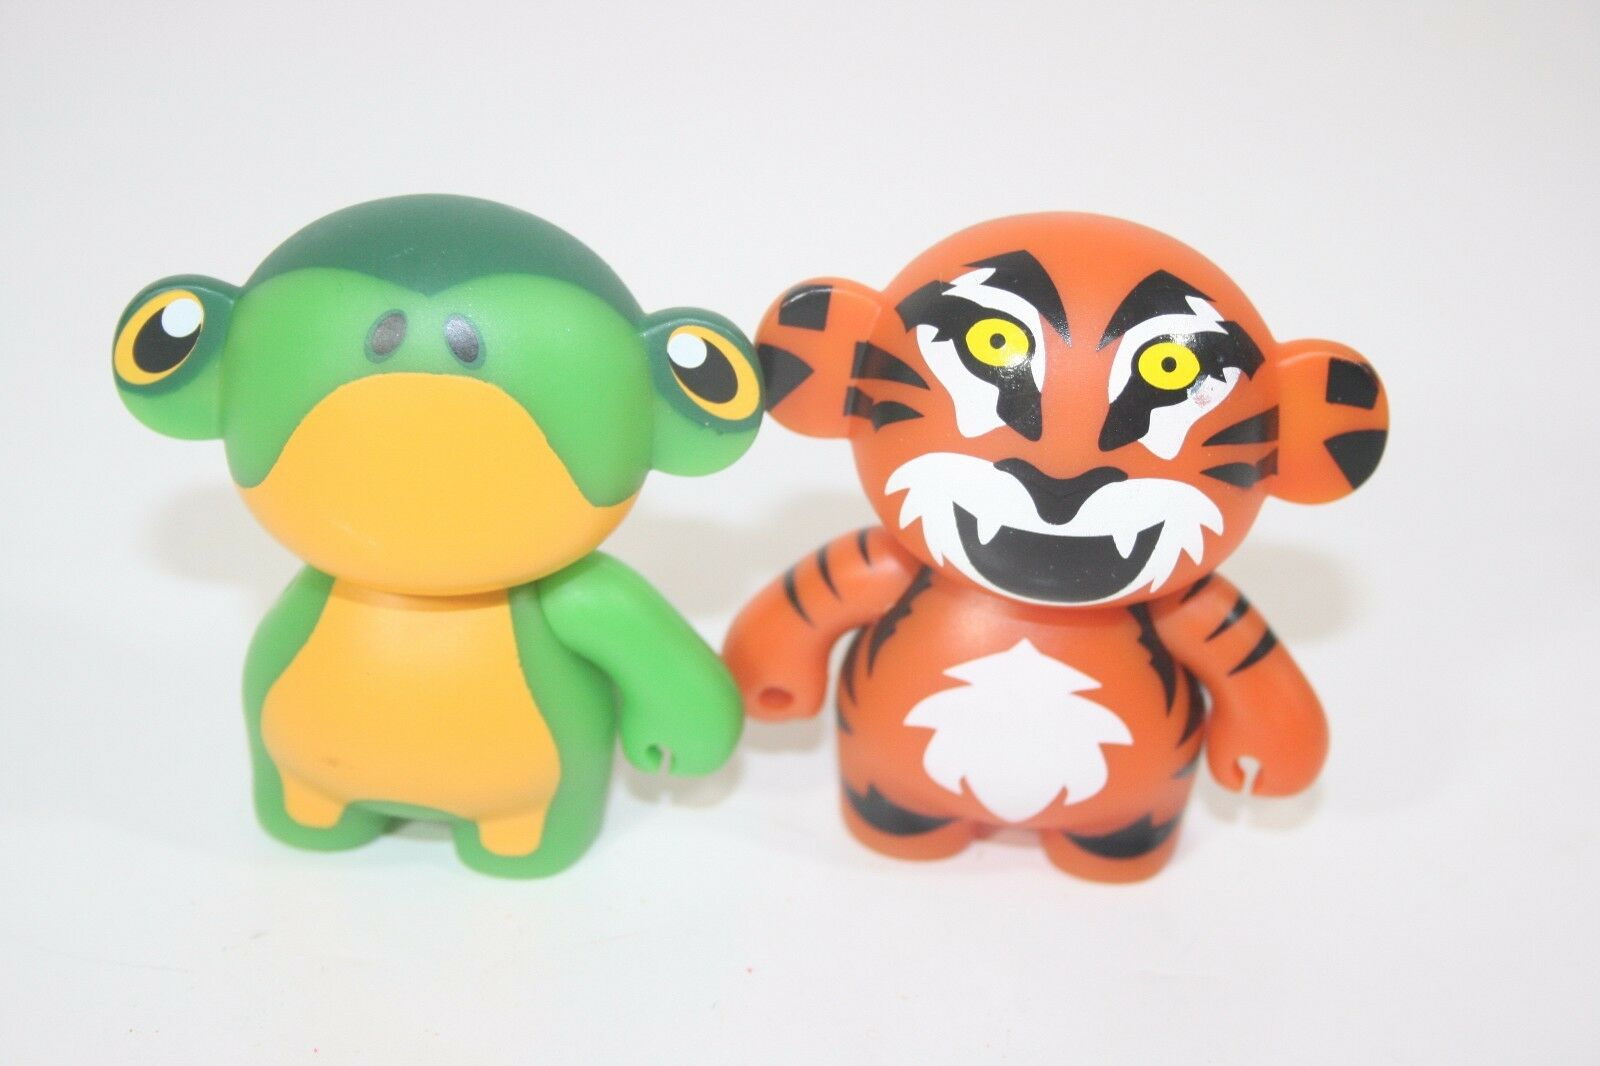 Monskey collectible Tiggz The Tiger and Brubs the Frog Figures Figurine